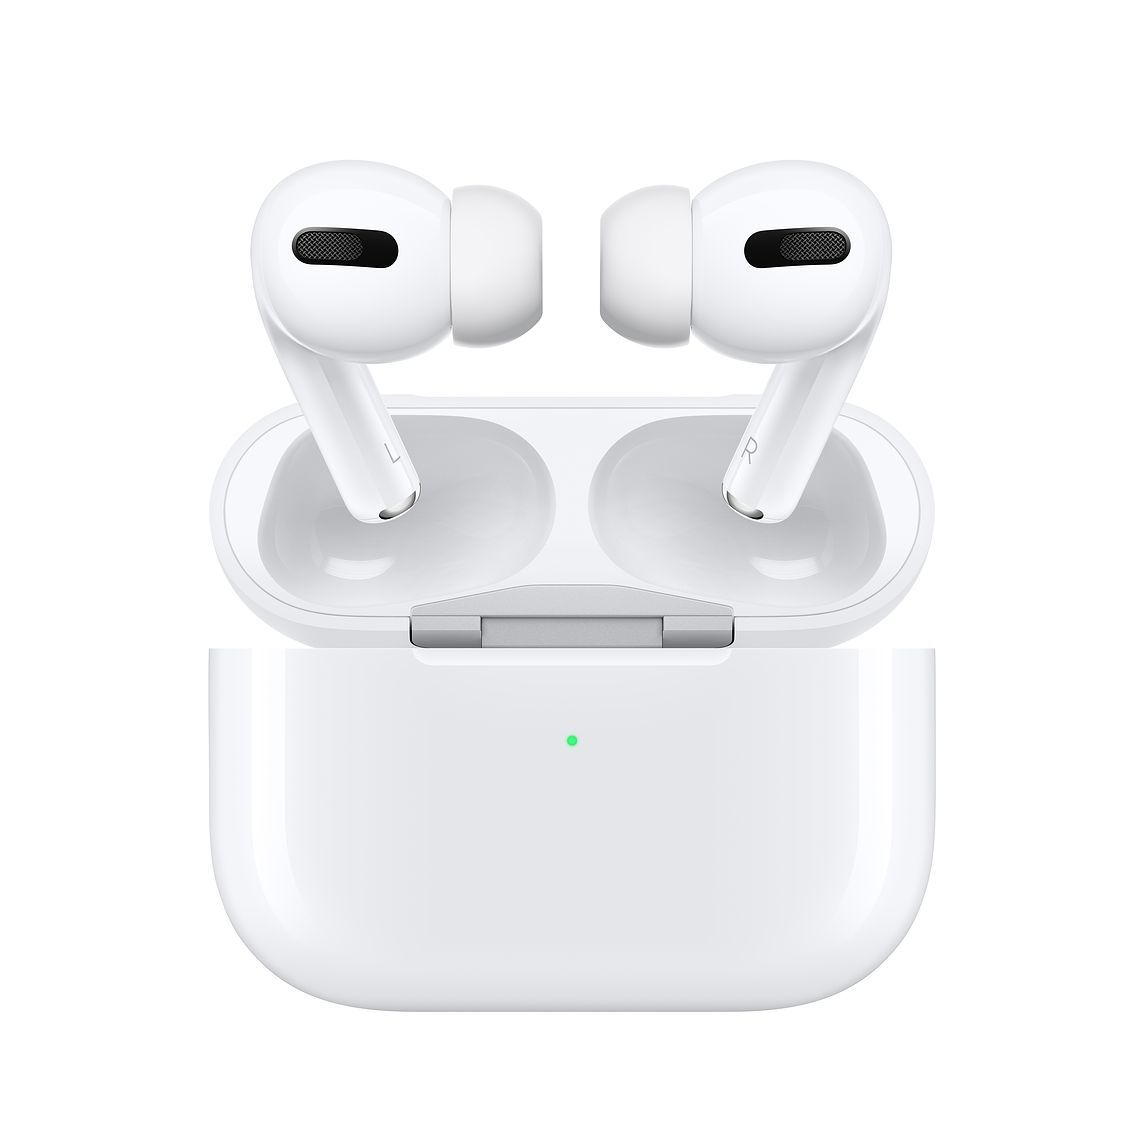 Airpods Pro Airpodspro Airpods Apple Airpodsapple Appleaipods Appleairpodspro Naushniki Headphones Https Apple Products Airpods Pro Noise Cancelling